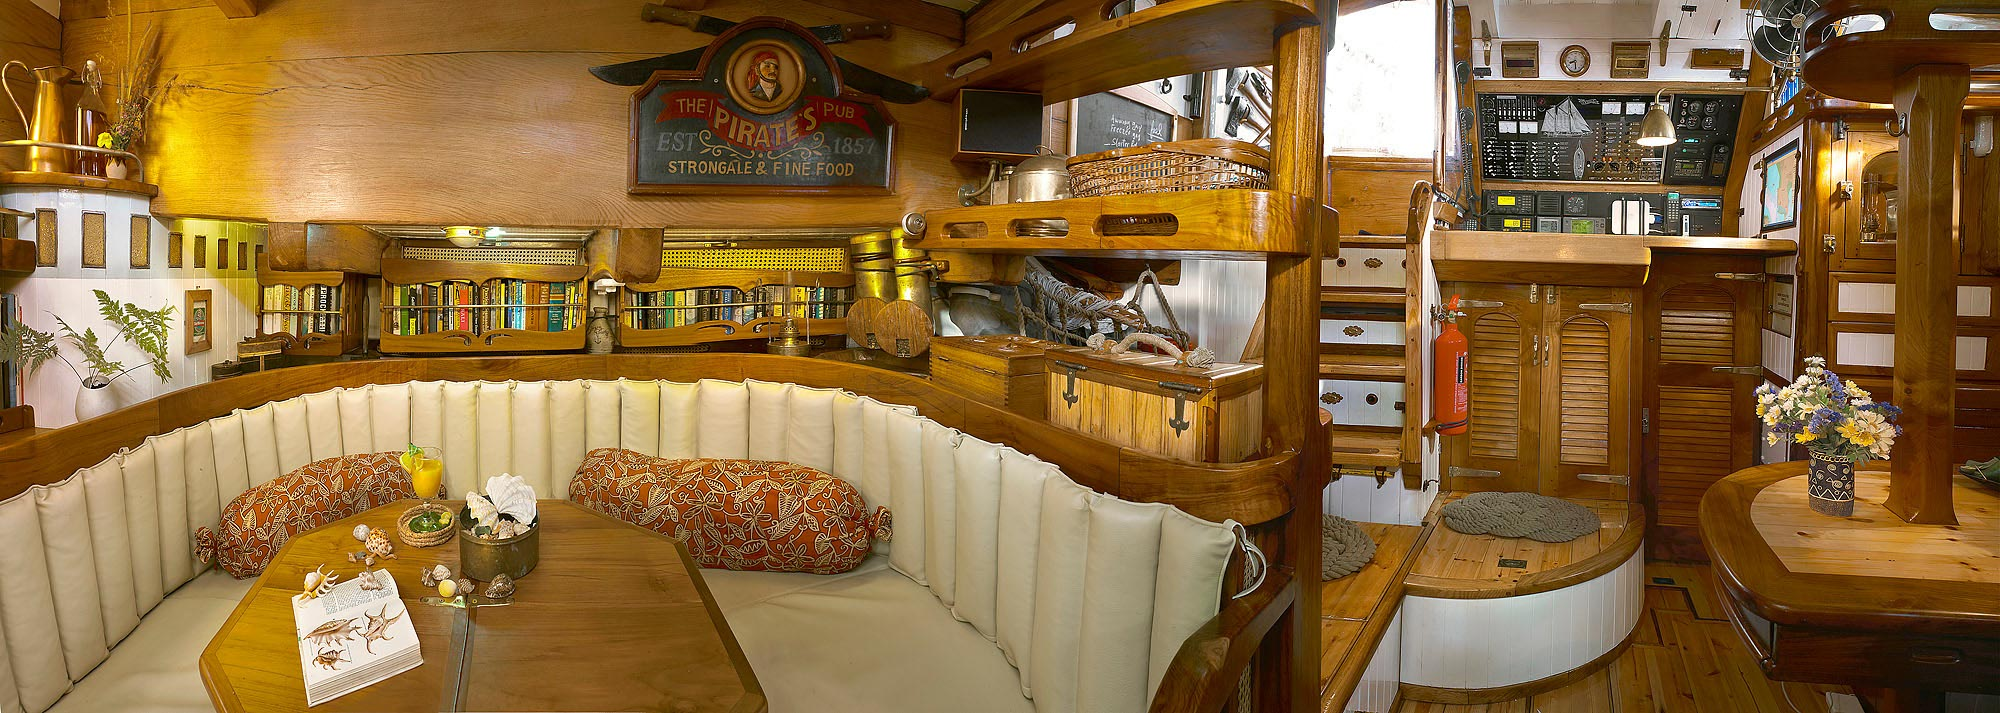 Historic Vessel Vega - salon and navigation areas are both spacious and functional blending modern high tech with 1800's style and grace.